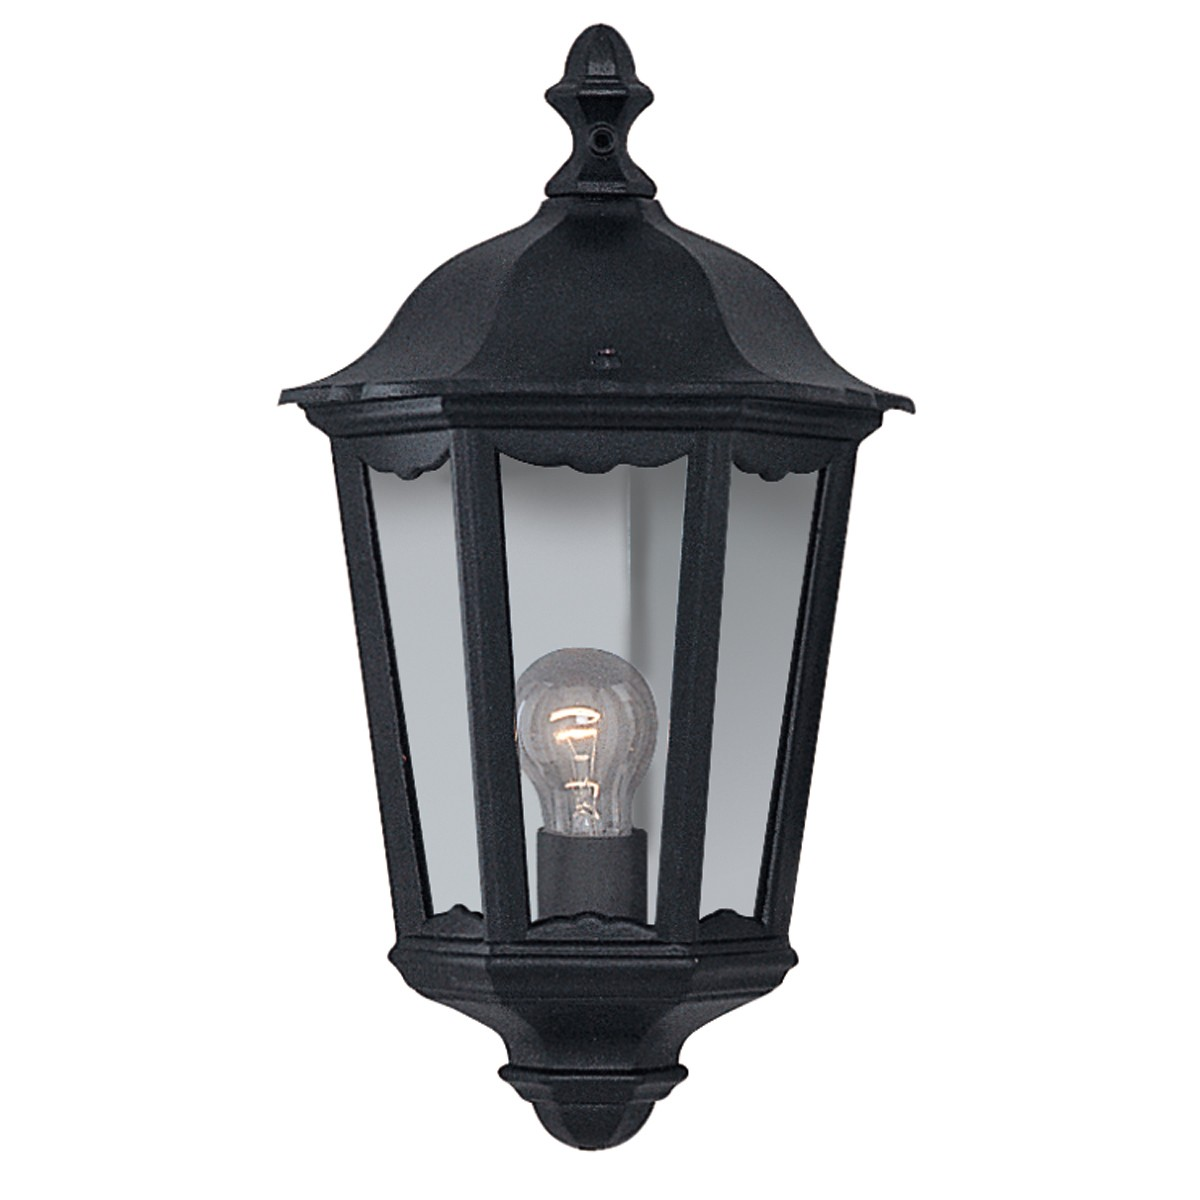 Black Outdoor Wall Lamps : ALEX IP44 BLACK OUTDOOR WALL LIGHT WITH CLEAR GLASS ? 82530BK Stanways Stoves and Lights